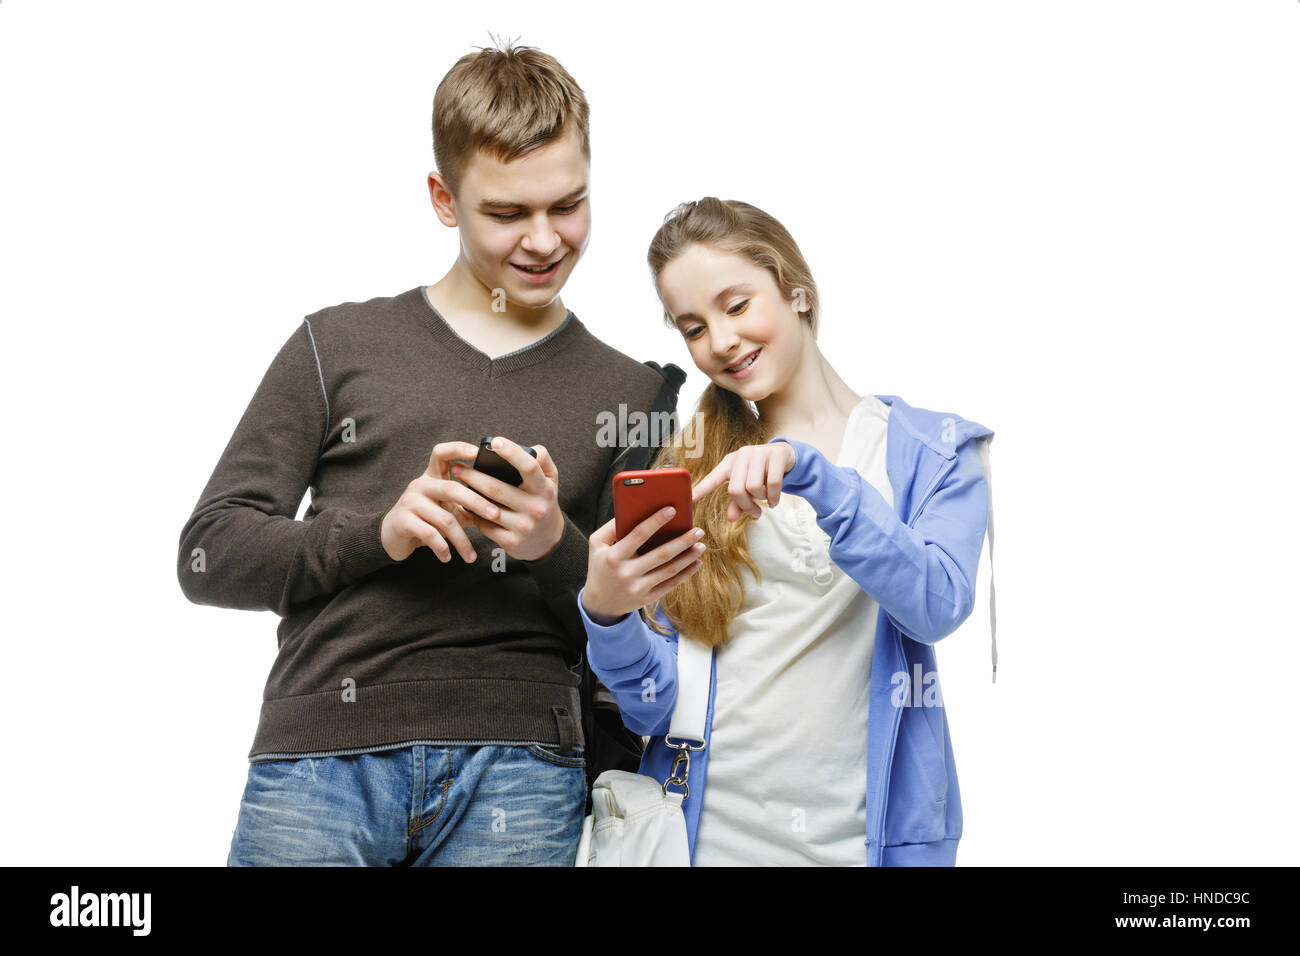 Beautiful teen age boy and girl in casual clothes holding mobile phones. School children texting using cellulars. - Stock Image